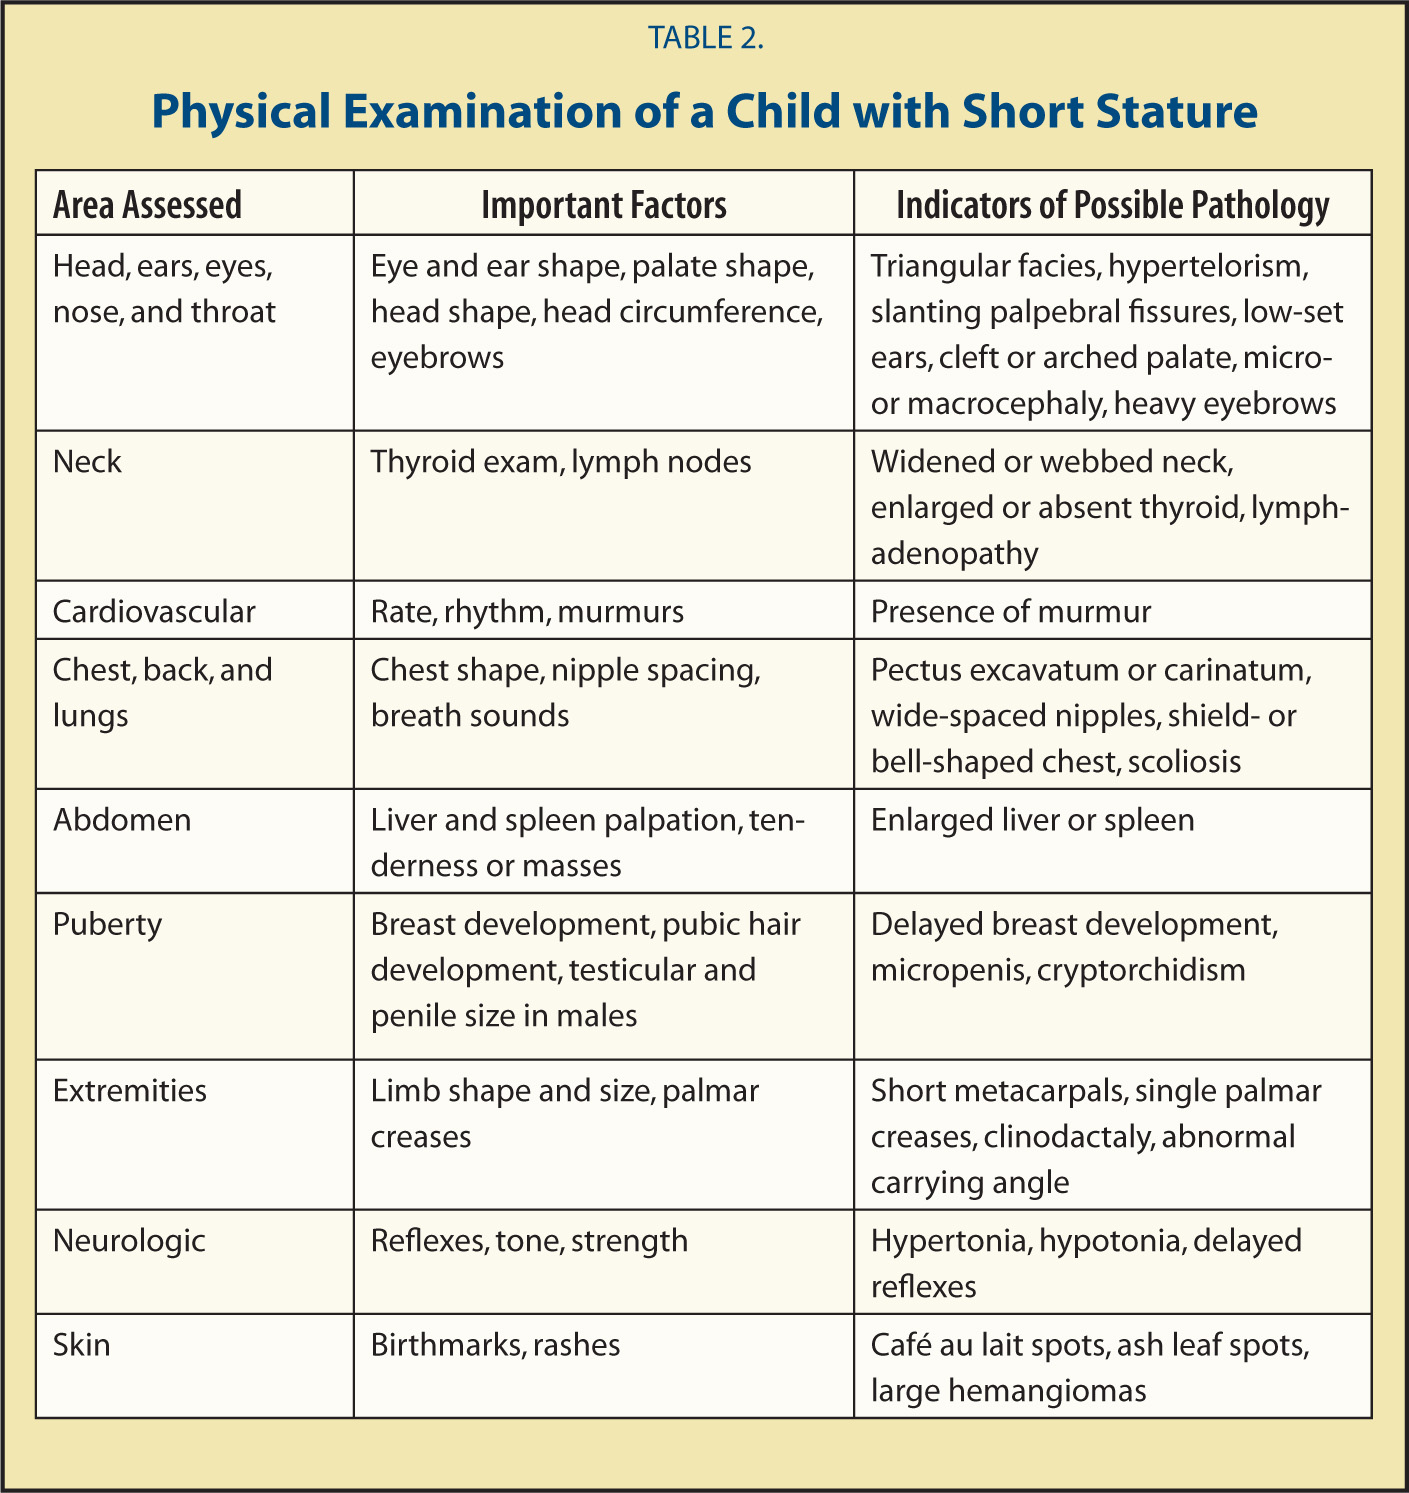 Physical Examination of a Child with Short Stature